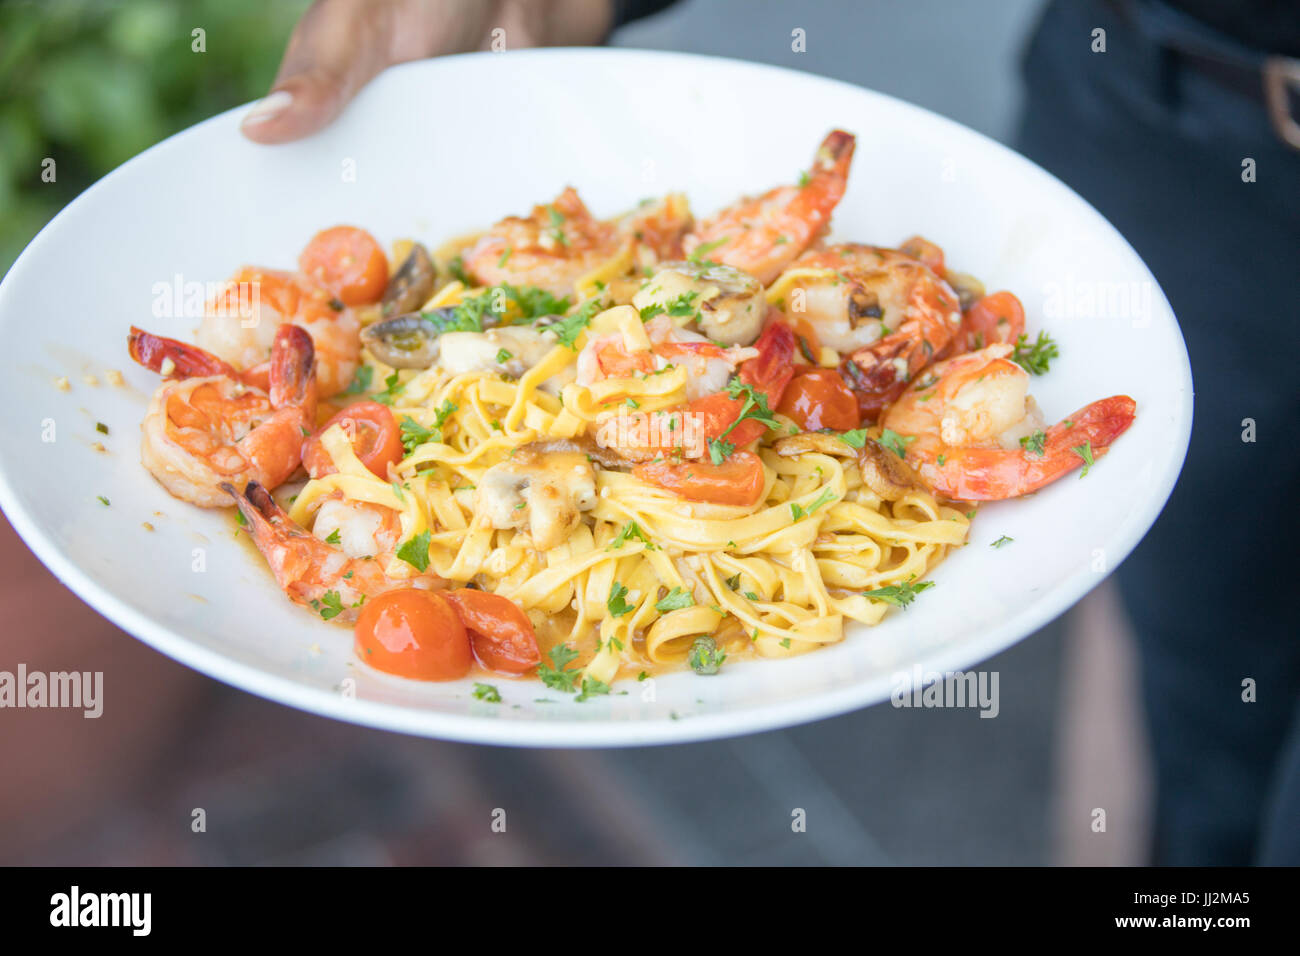 Shrimp and Garlic on fresh pasta, Legal Sea Foods restaurant, Boston, MA, USA - Stock Image